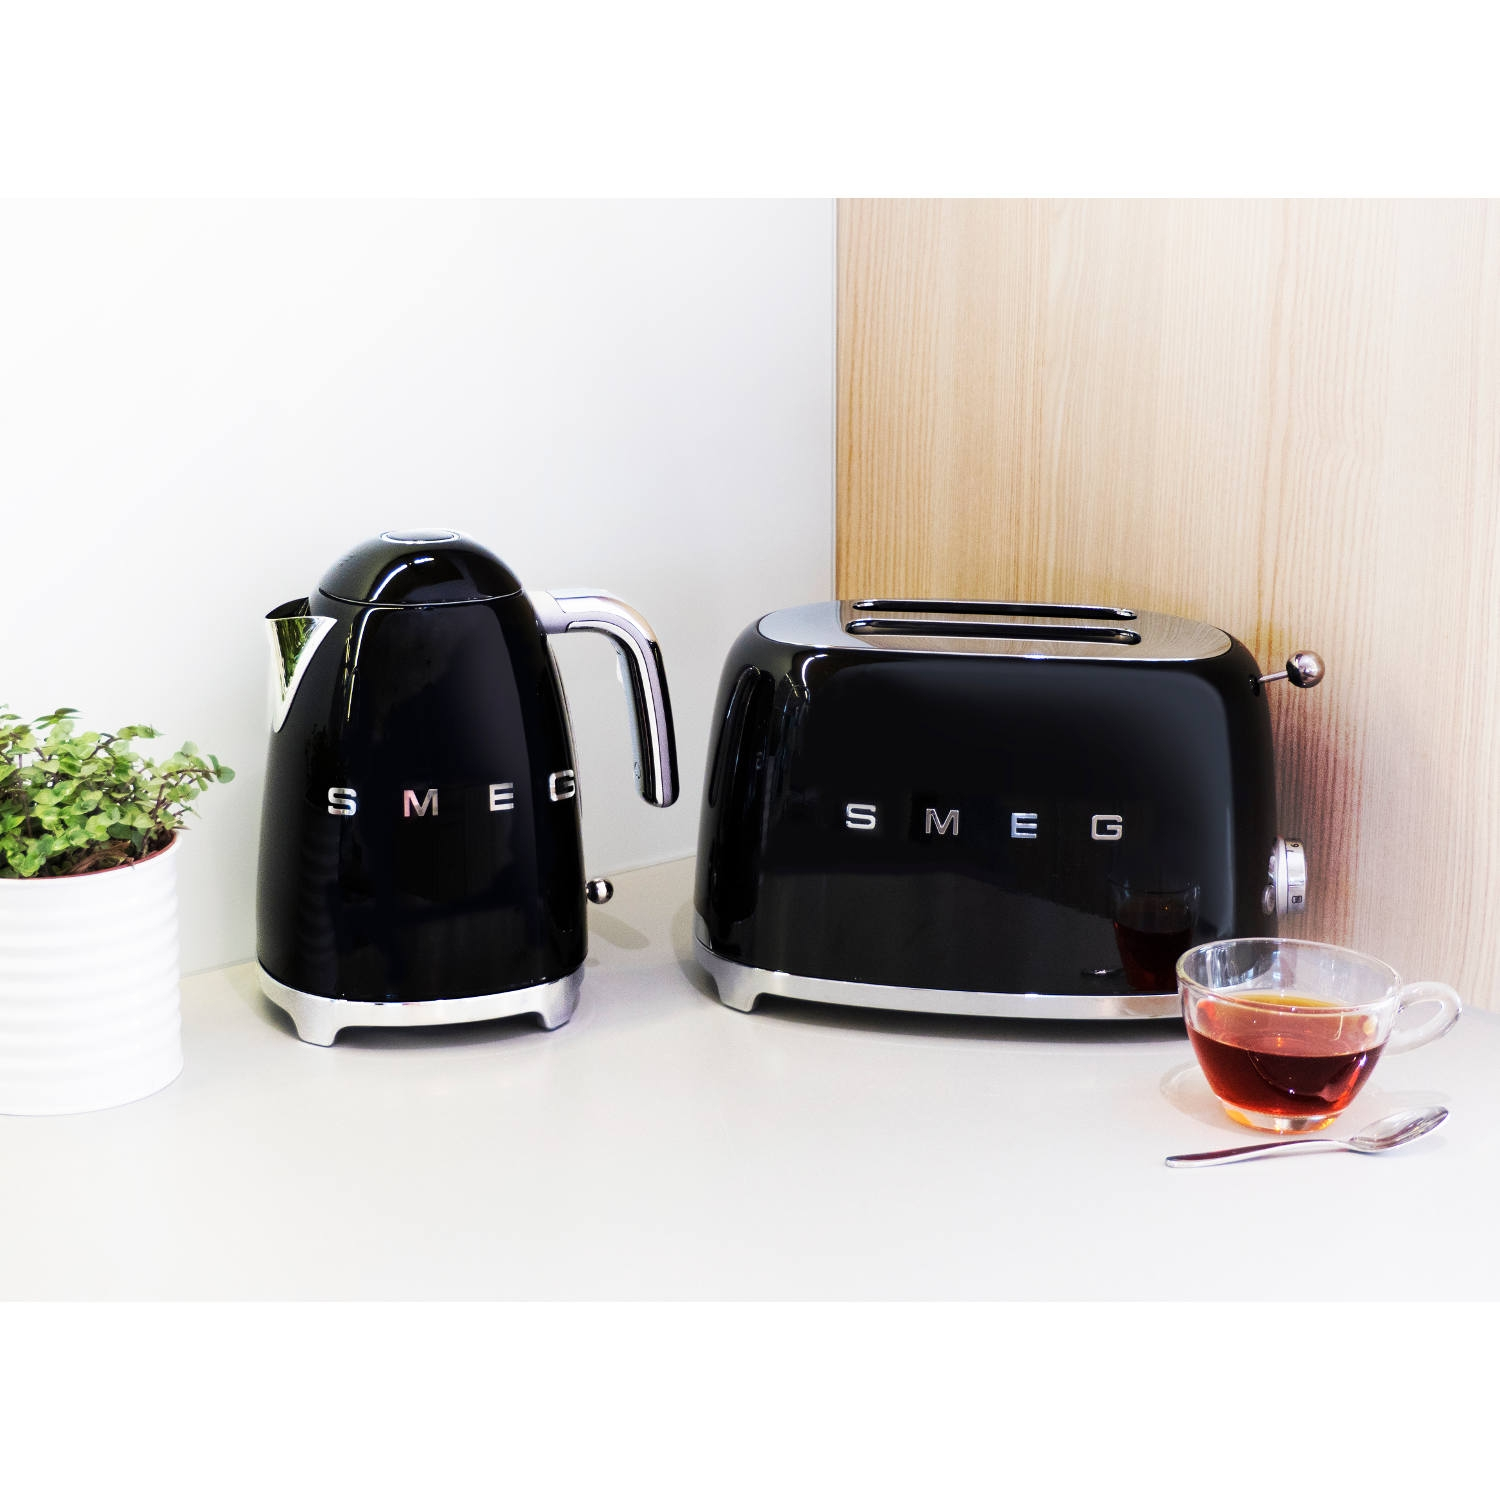 Smeg Klf03bluk 50 S Retro Style Kettle Black Herne Bay Interiors Inside Ideas Interiors design about Everything [magnanprojects.com]